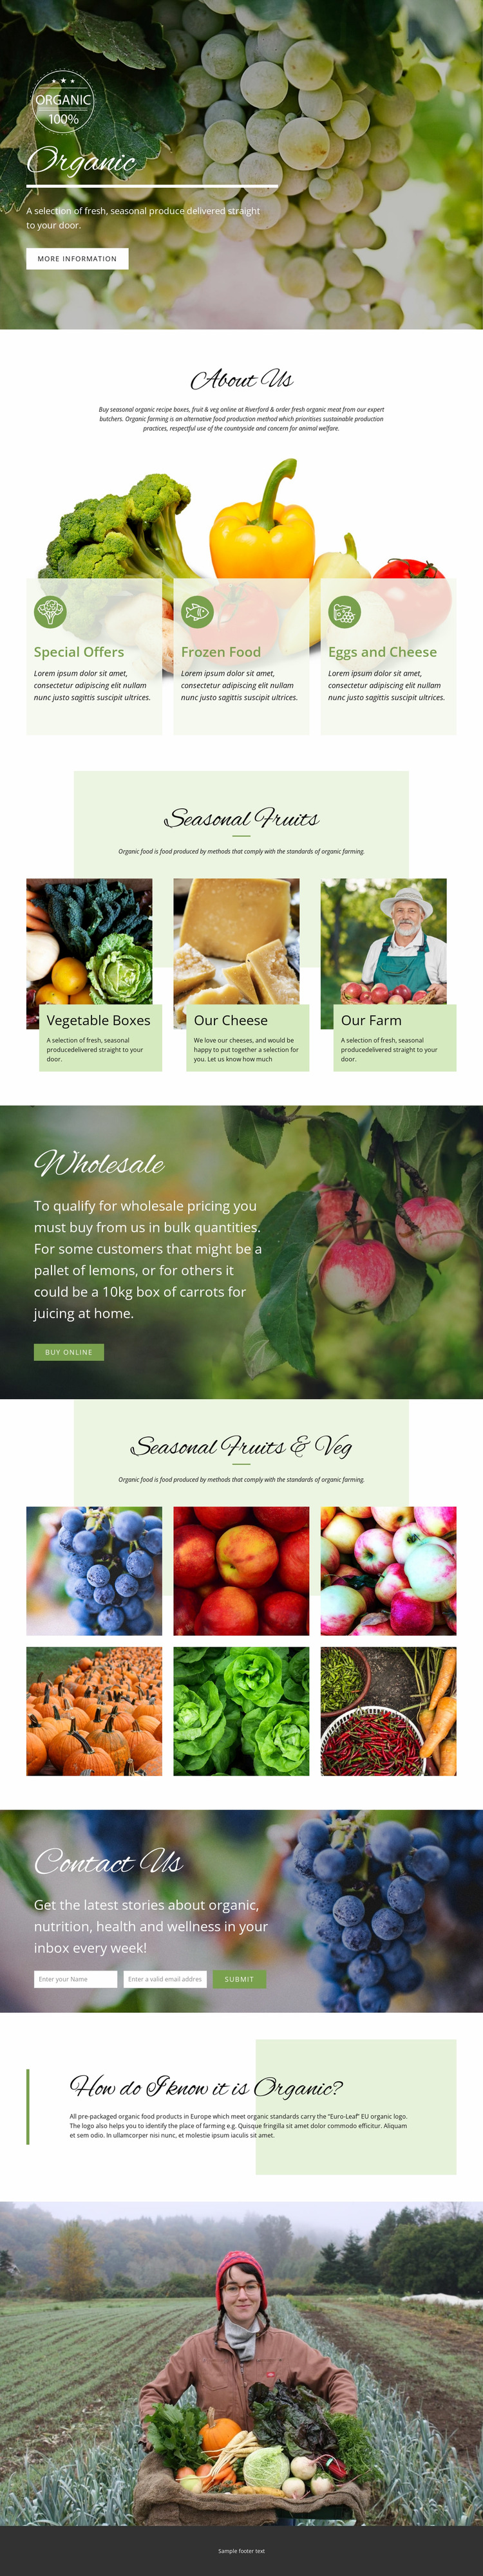 Healthier with organic food Html Website Builder